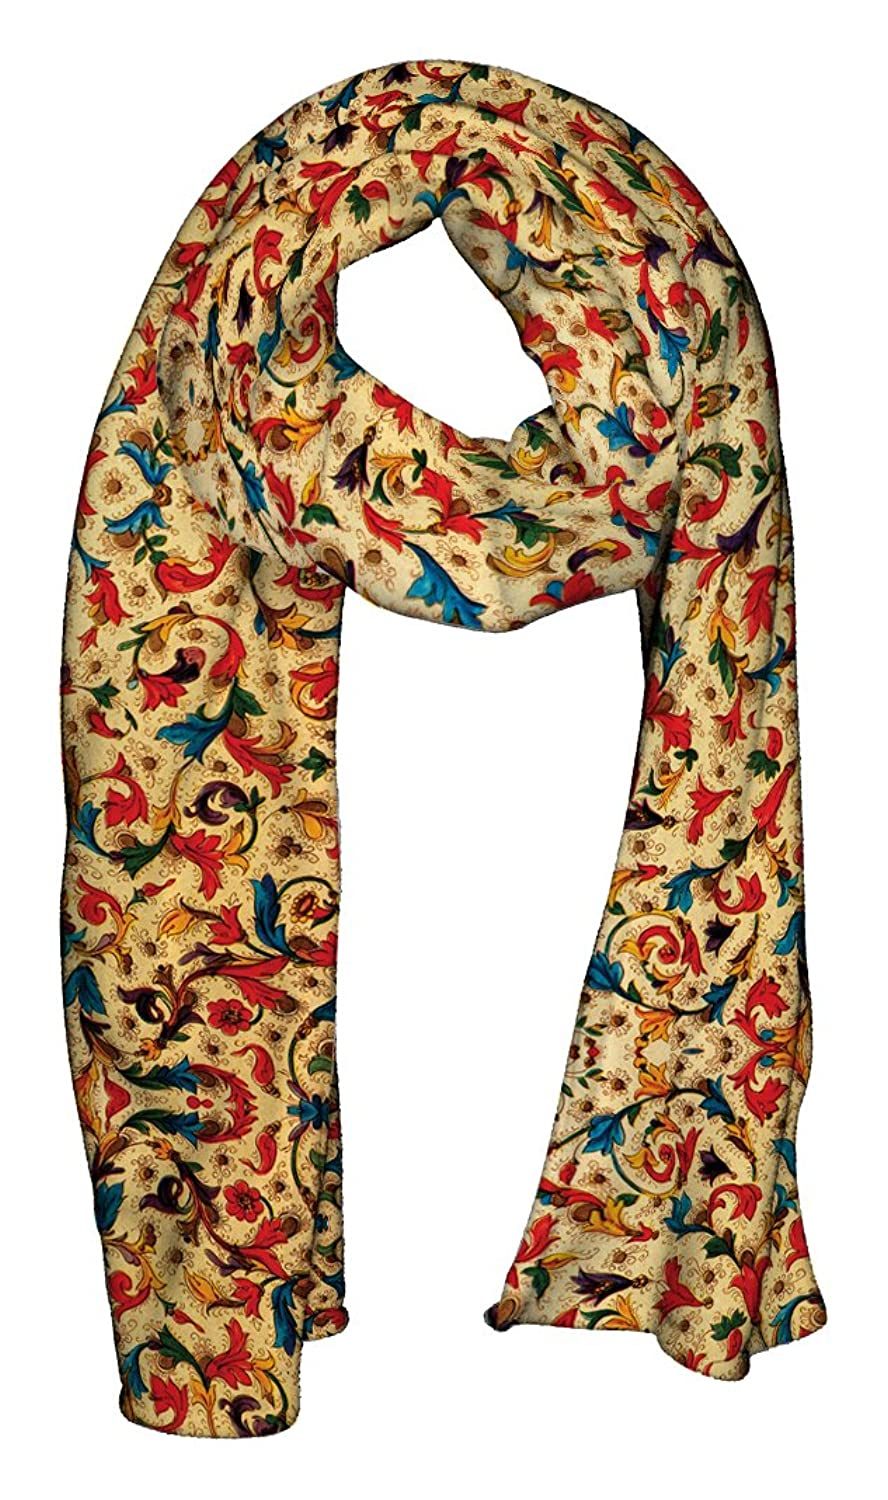 Goby Scarves ''Colorful & Floral Scarf Design'' Printed Colorful AT001